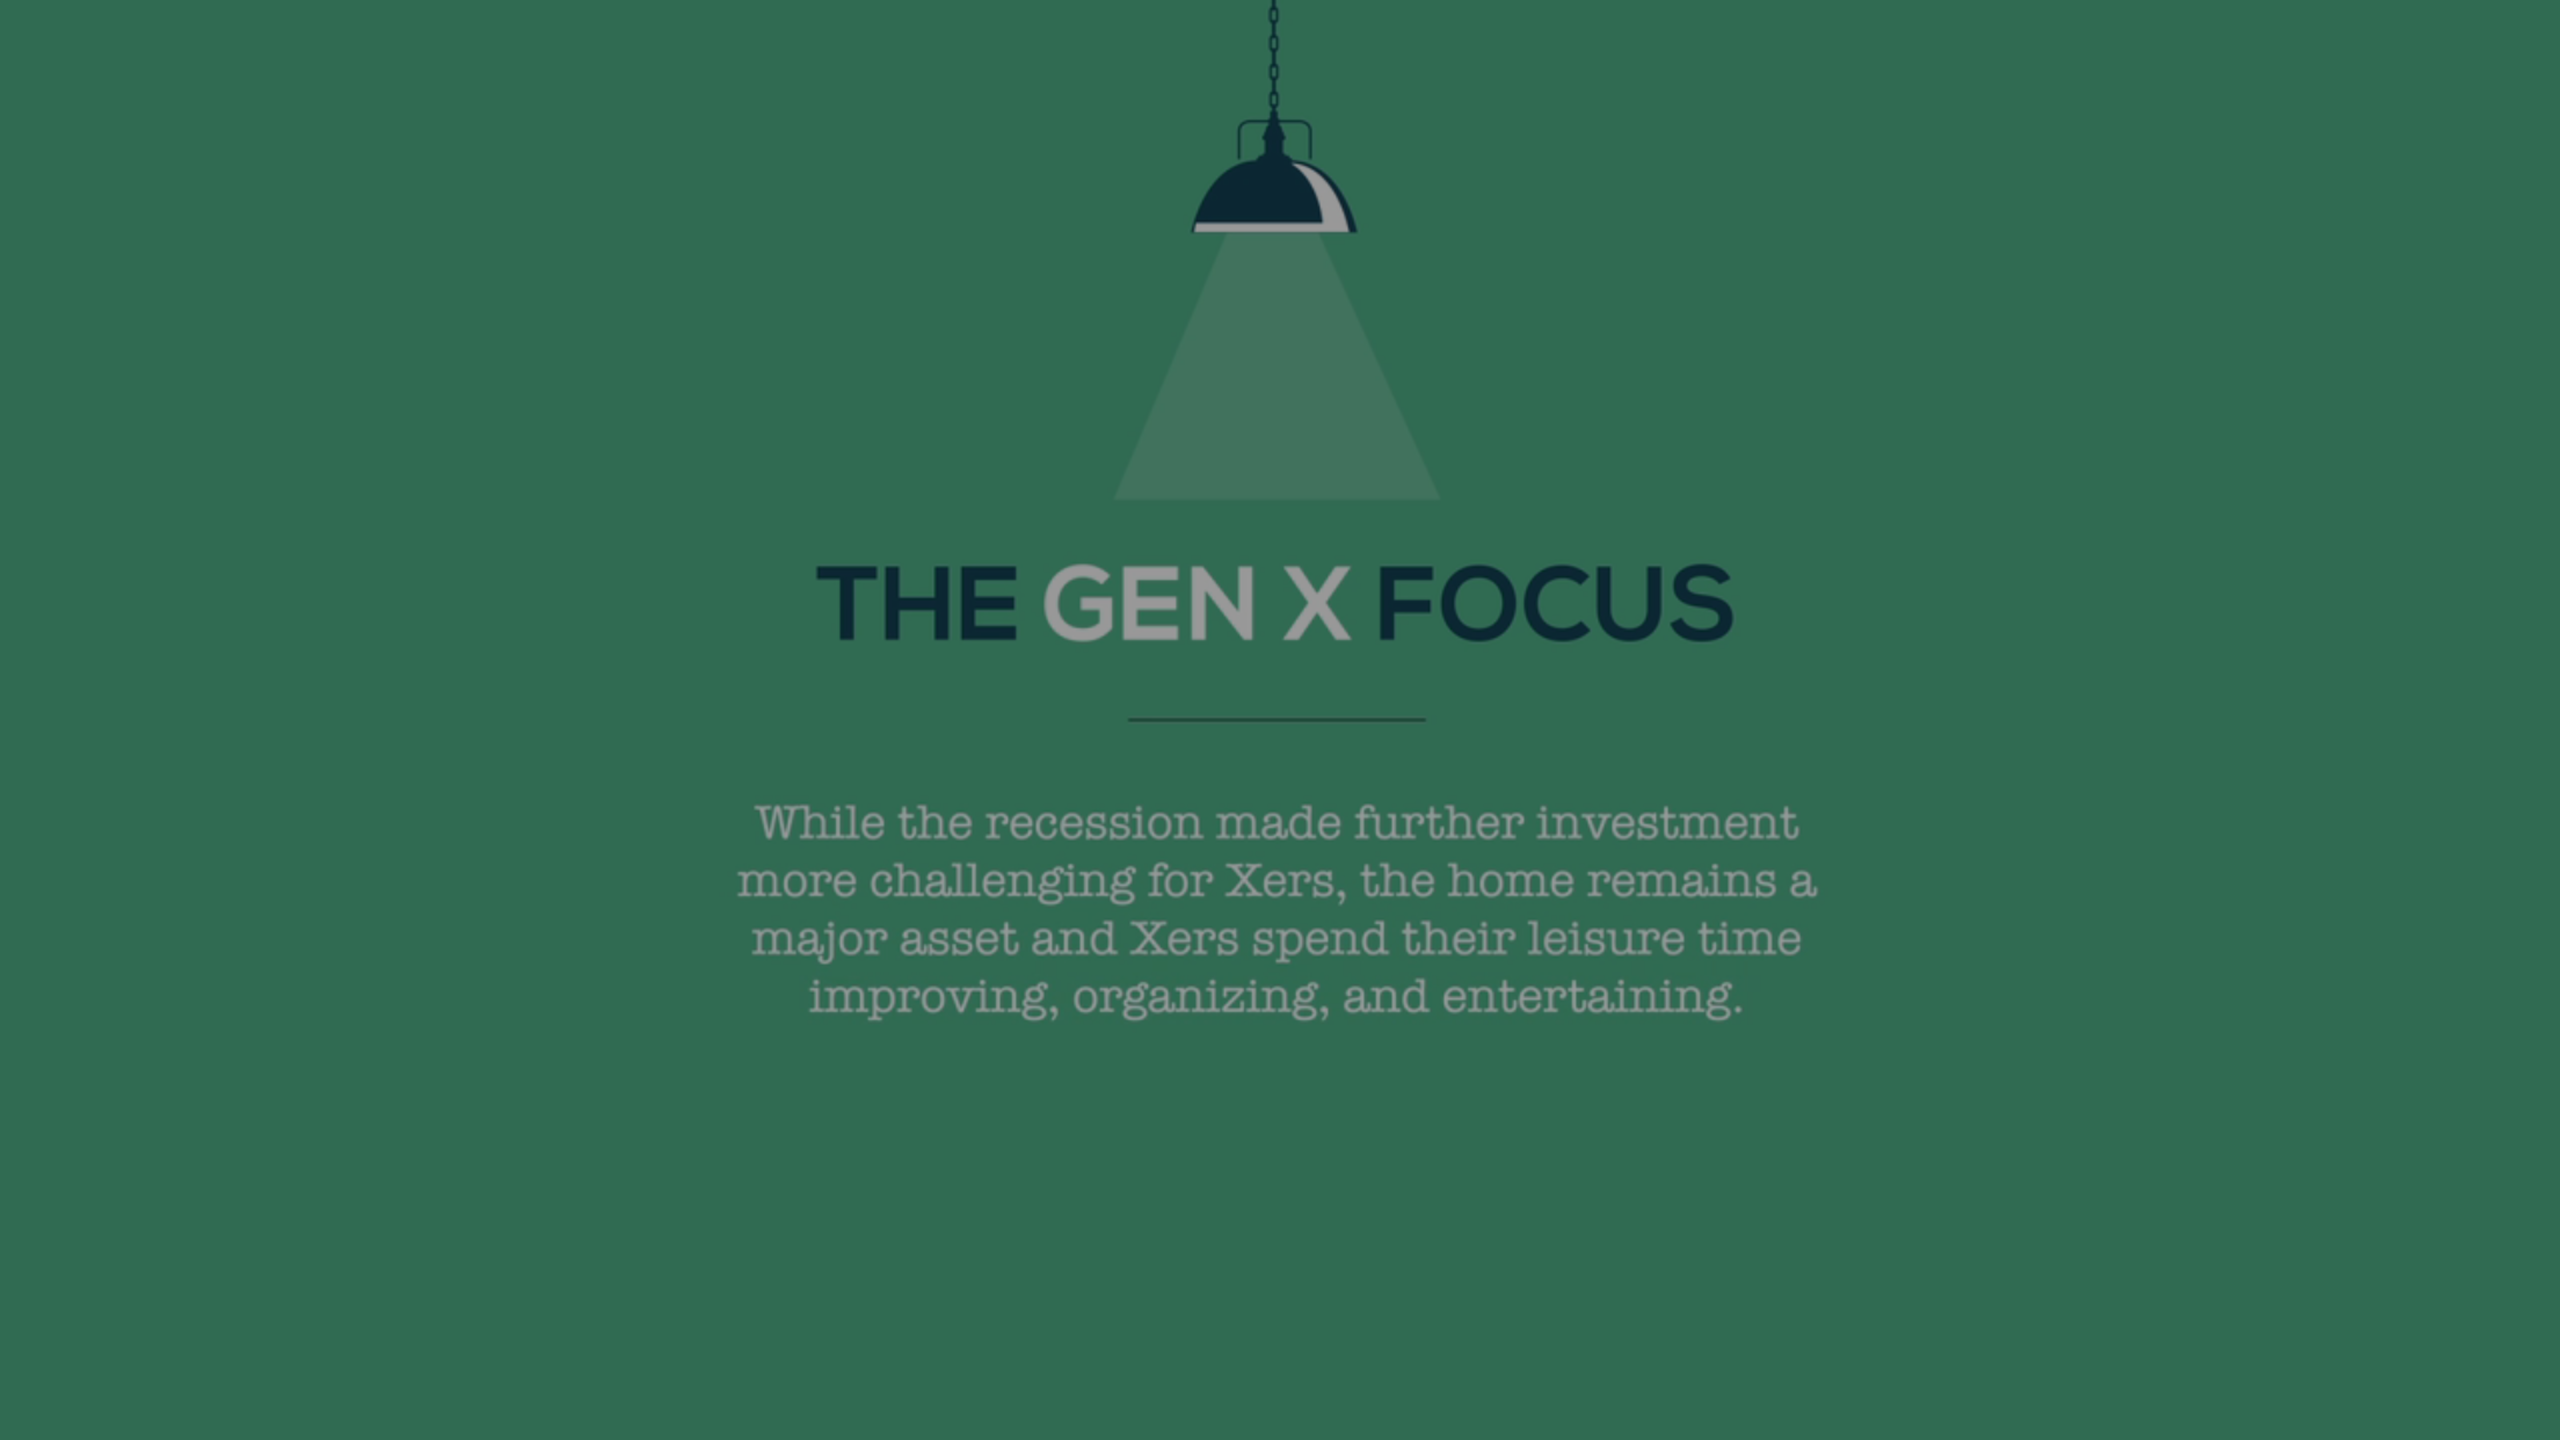 One Cool Thing (Gen X Focus)